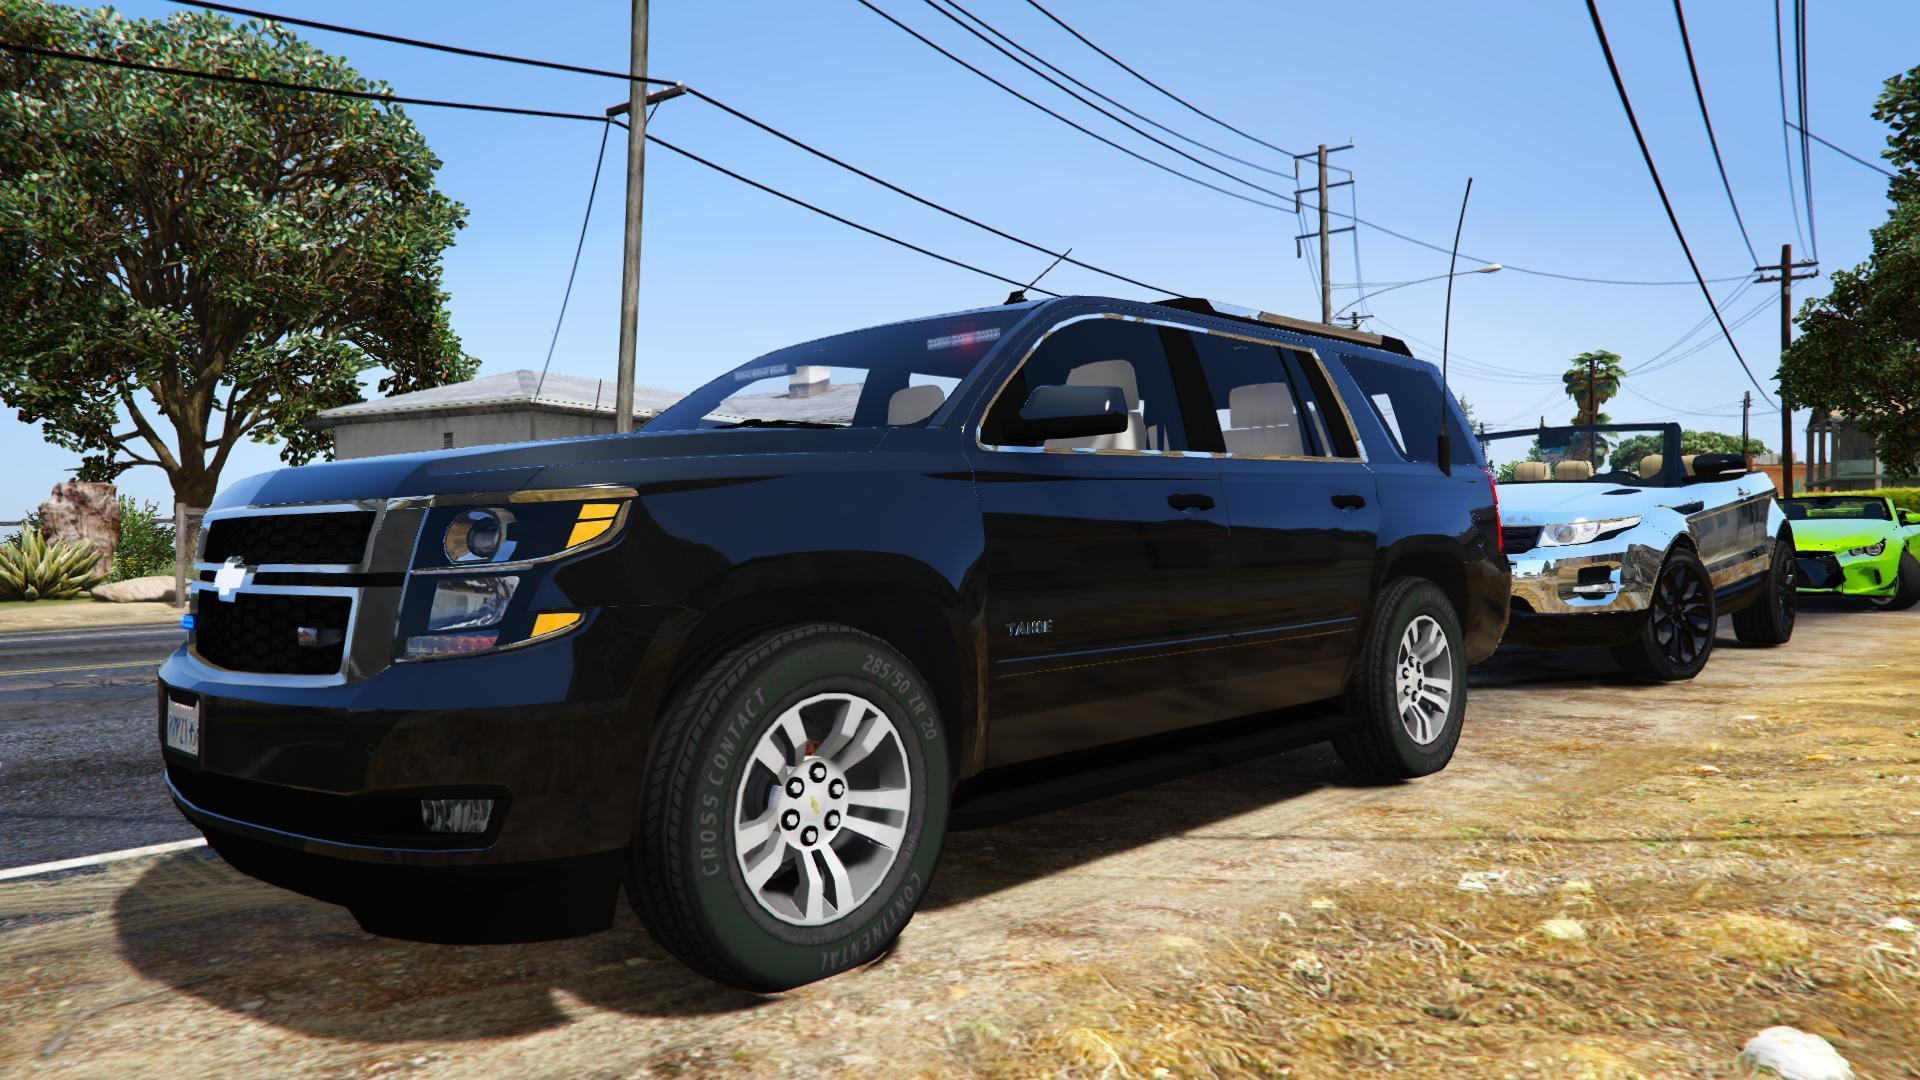 2015 Chevrolet Tahoe FBI [Unlocked] - GTA5-Mods.com